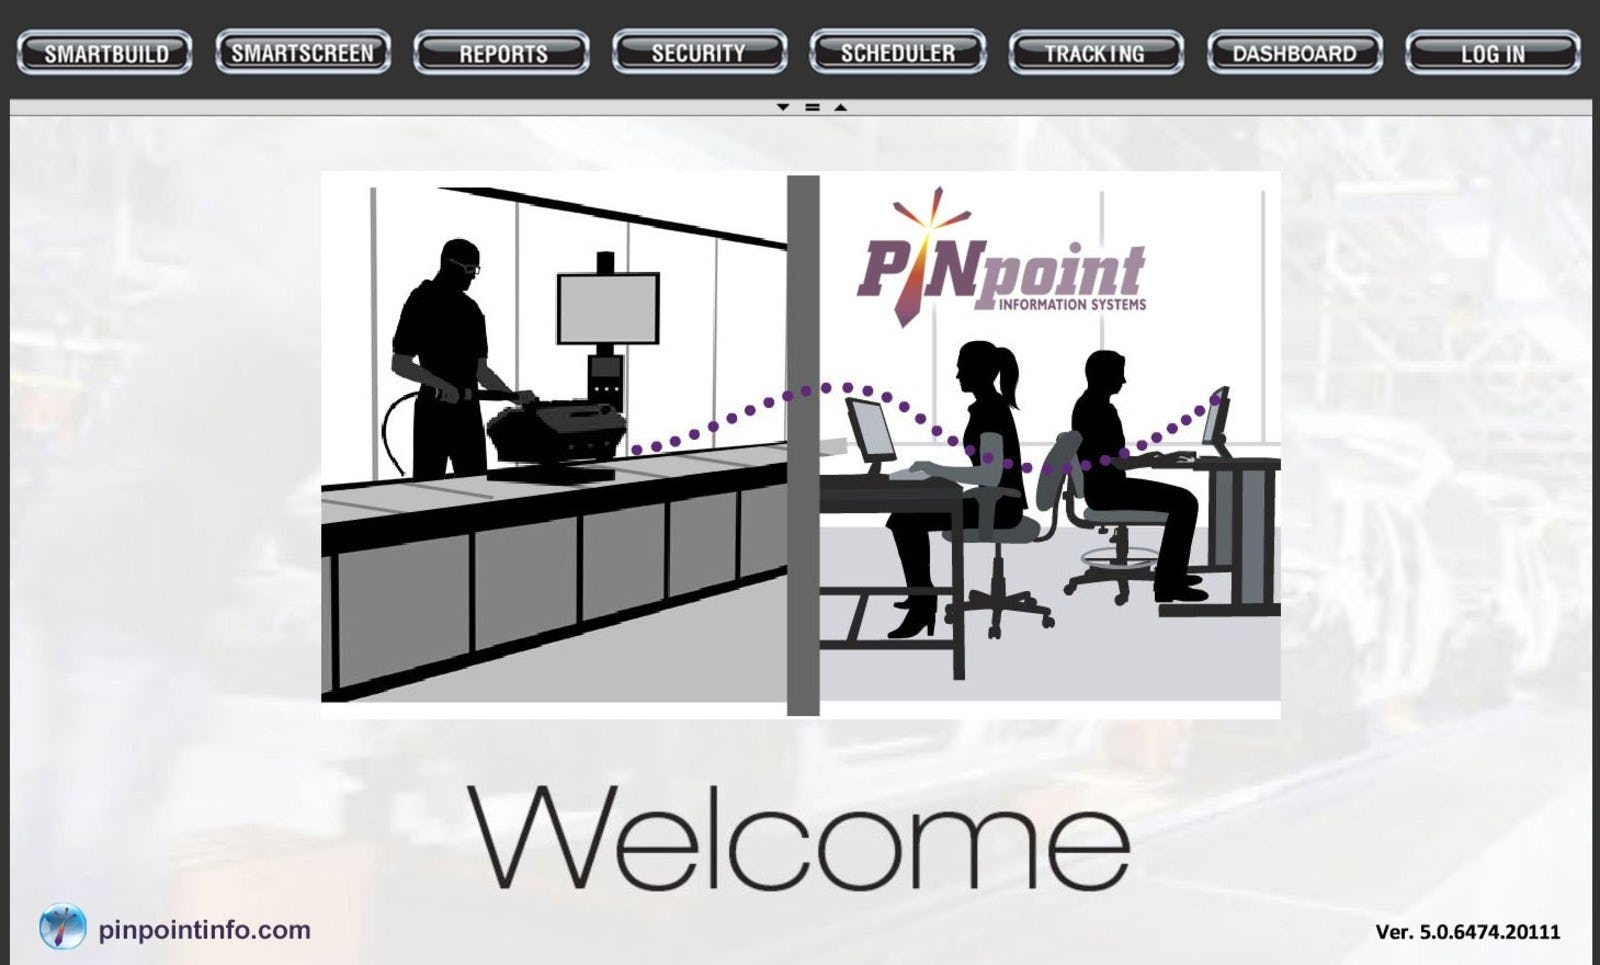 V5 MES - Welcome screen